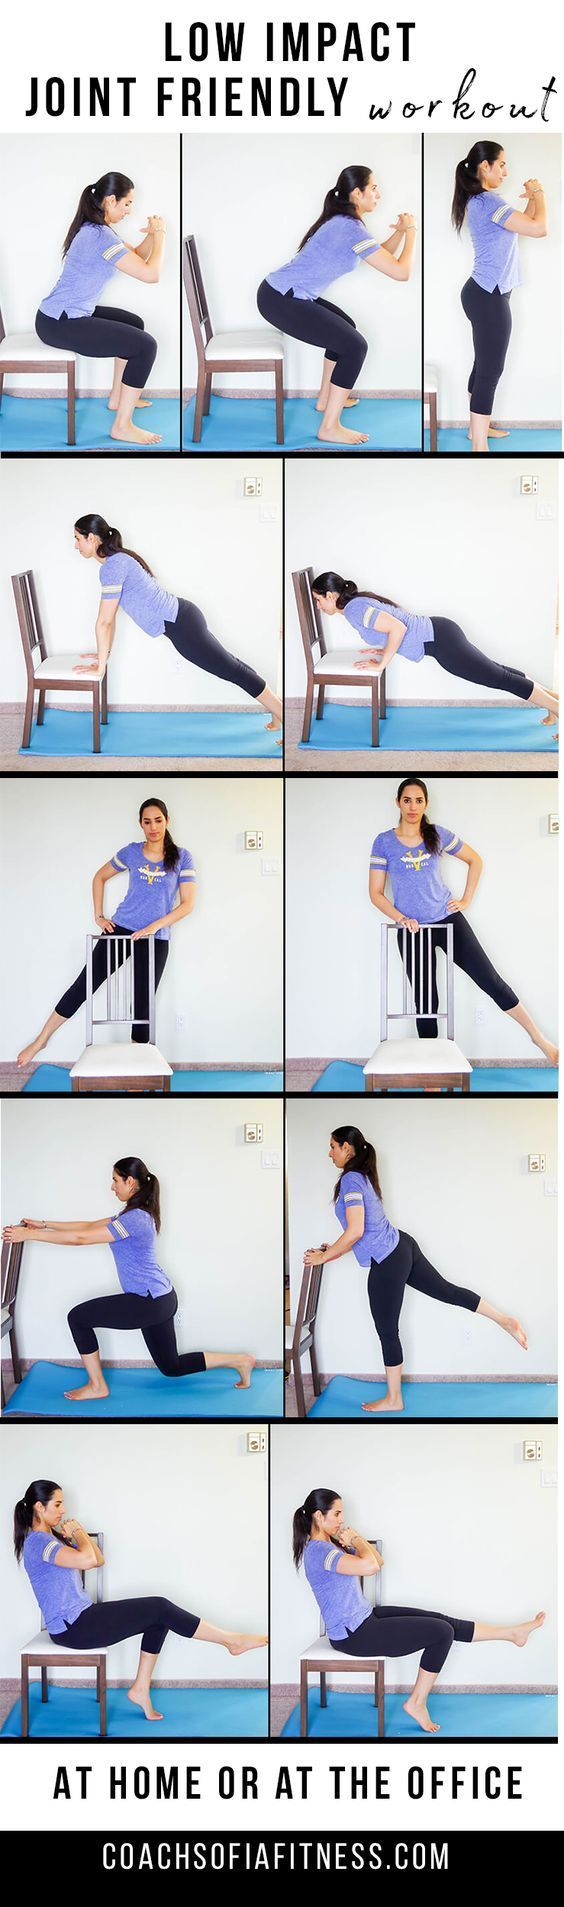 Low Impact Joint Workout you can do when suffering from low back pain or chronic pain | joint friend